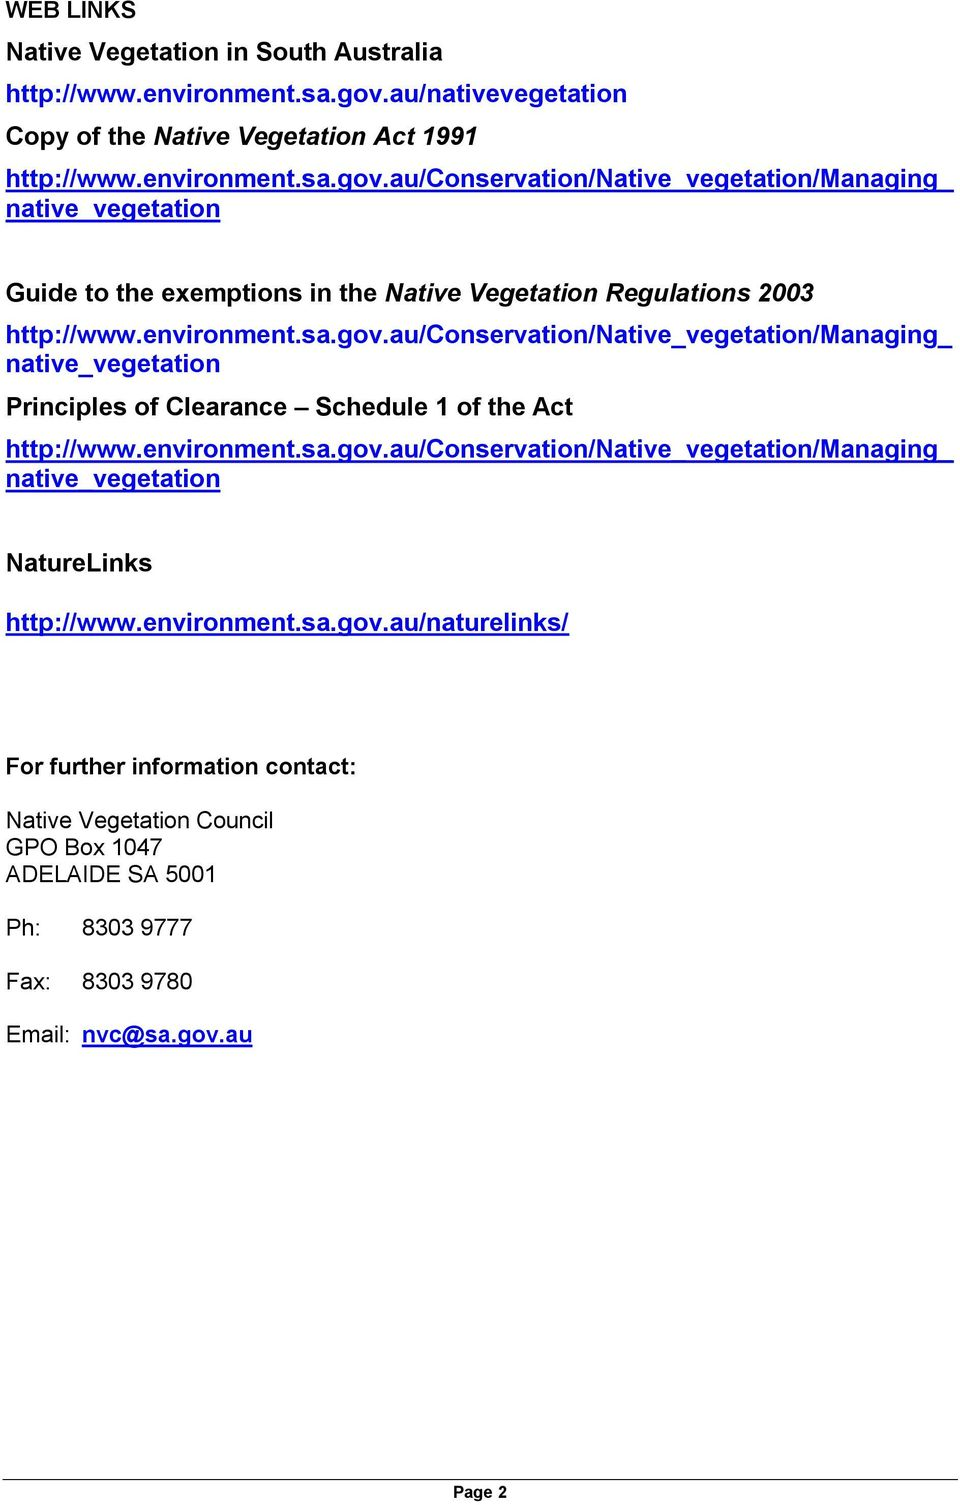 au/conservation/native_vegetation/managing_ native_vegetation Guide to the exemptions in the Native Vegetation Regulations 2003 http://www.environment.sa.gov.